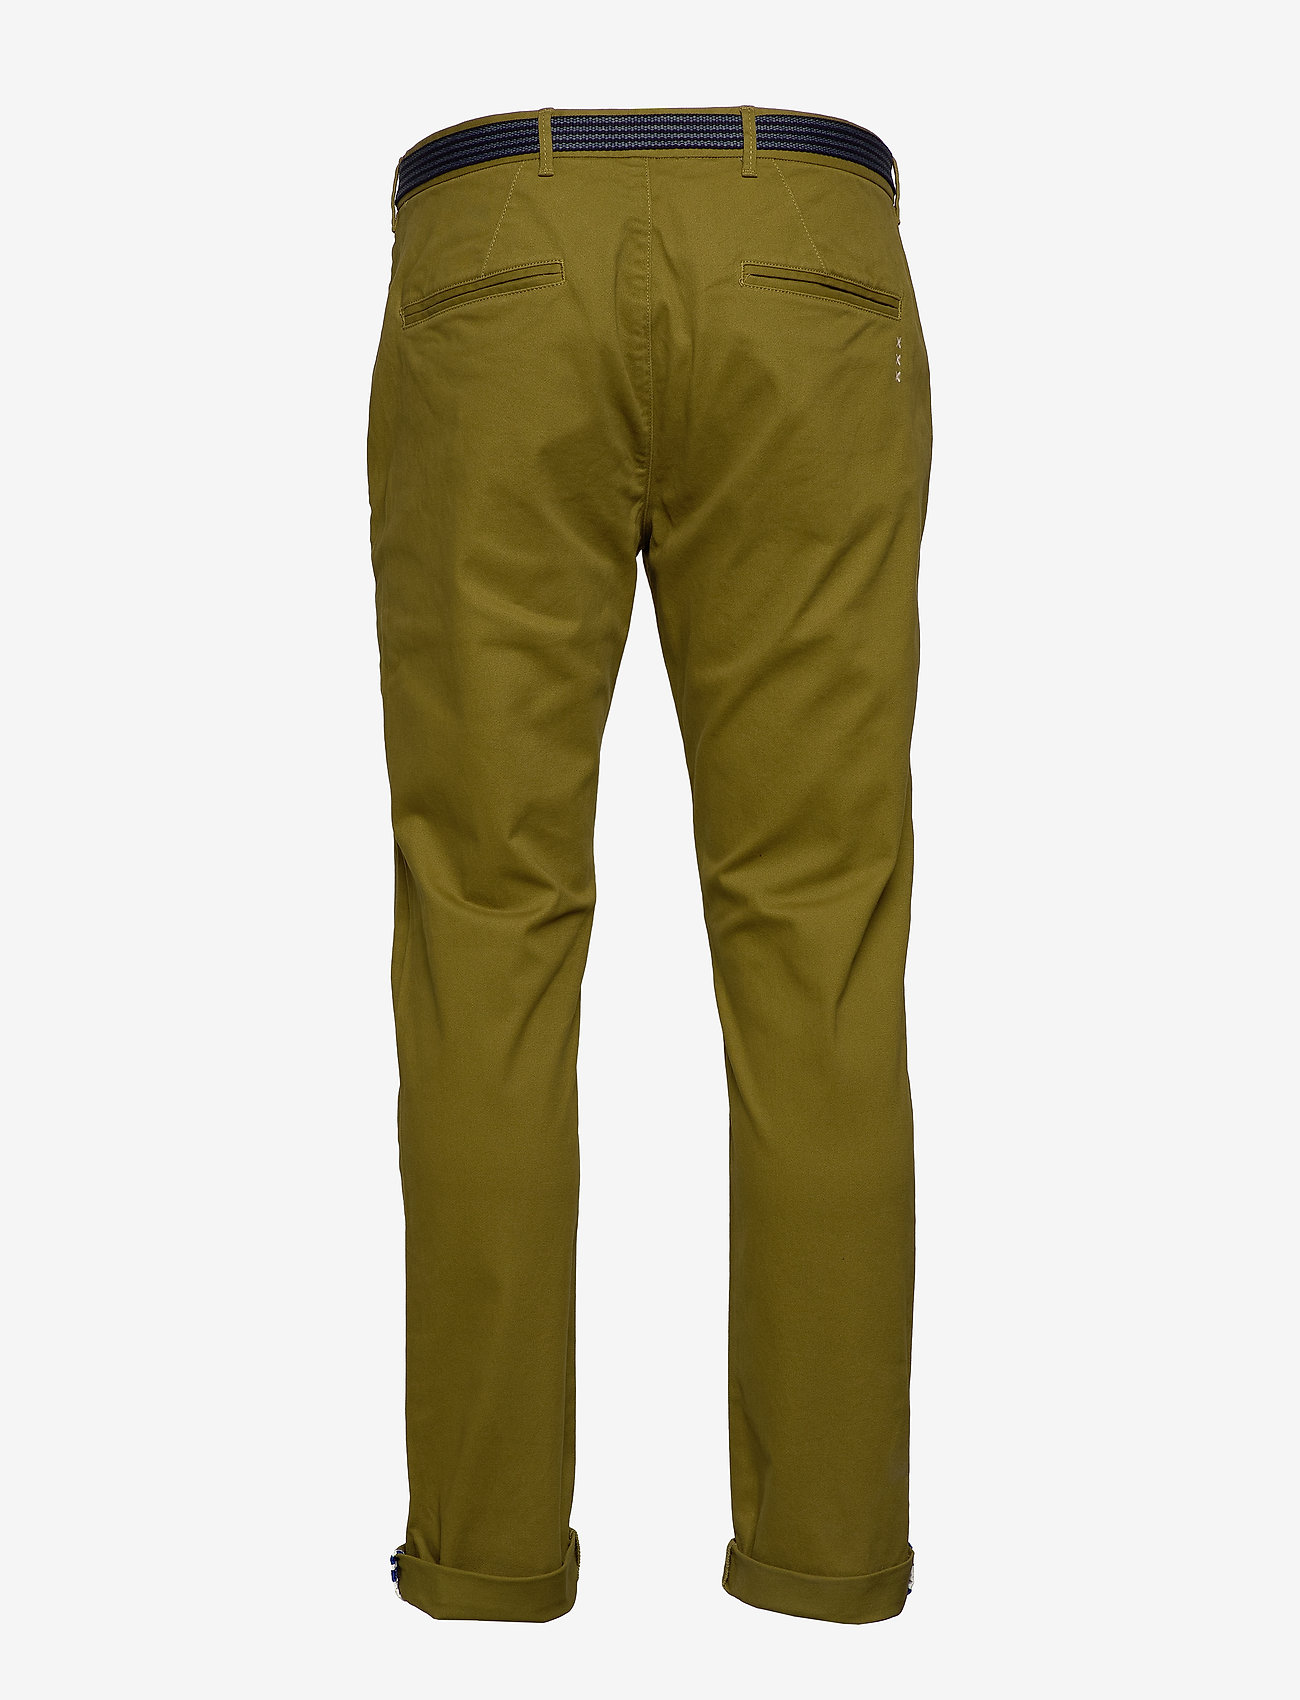 Scotch & Soda - Stuart peached twill chino with give away belt - chinos - military green - 1